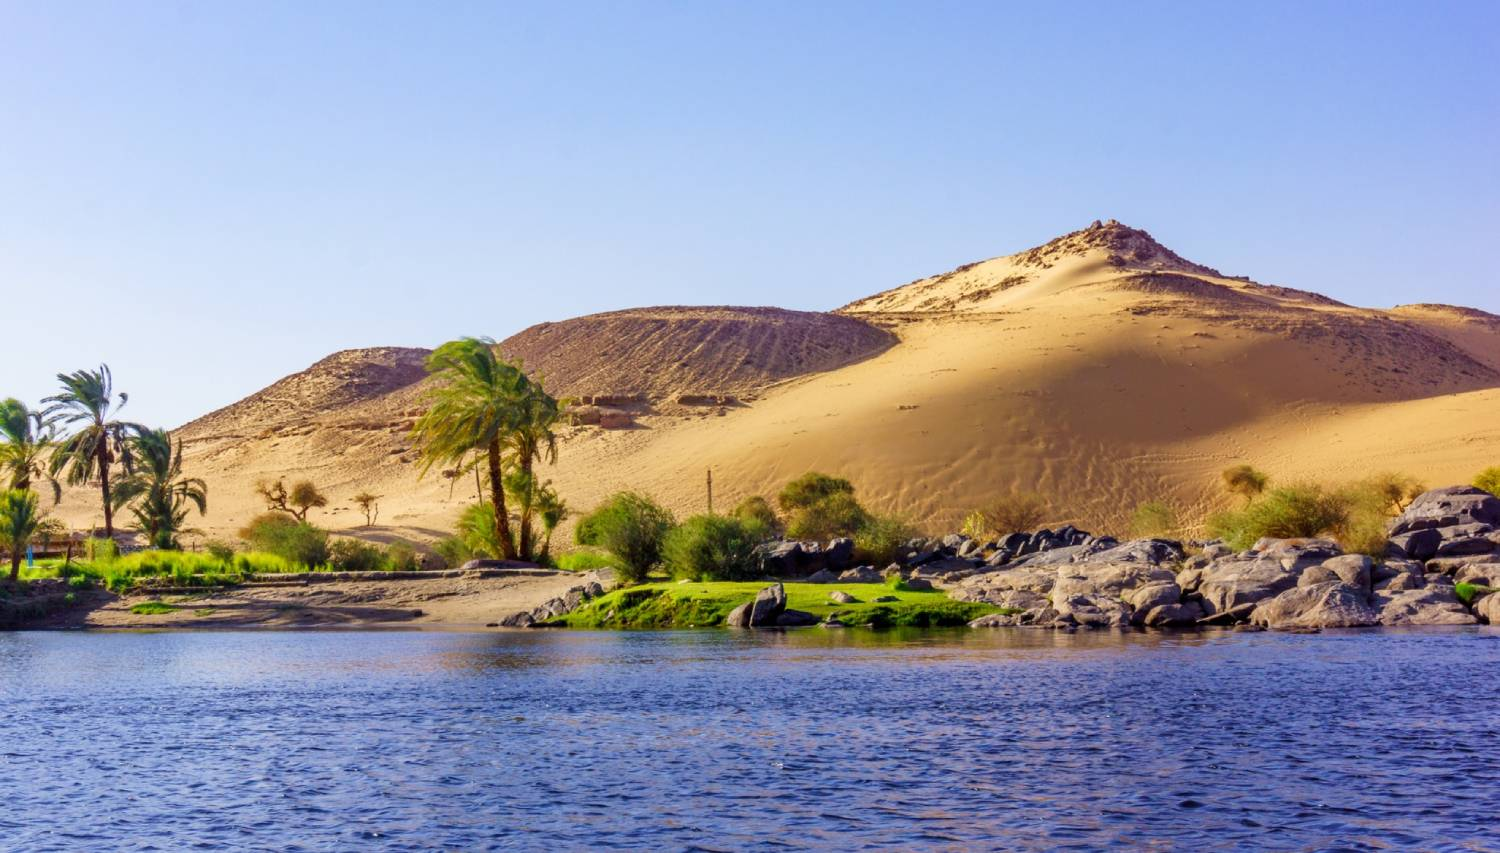 Nile River - Things To Do In Aswan